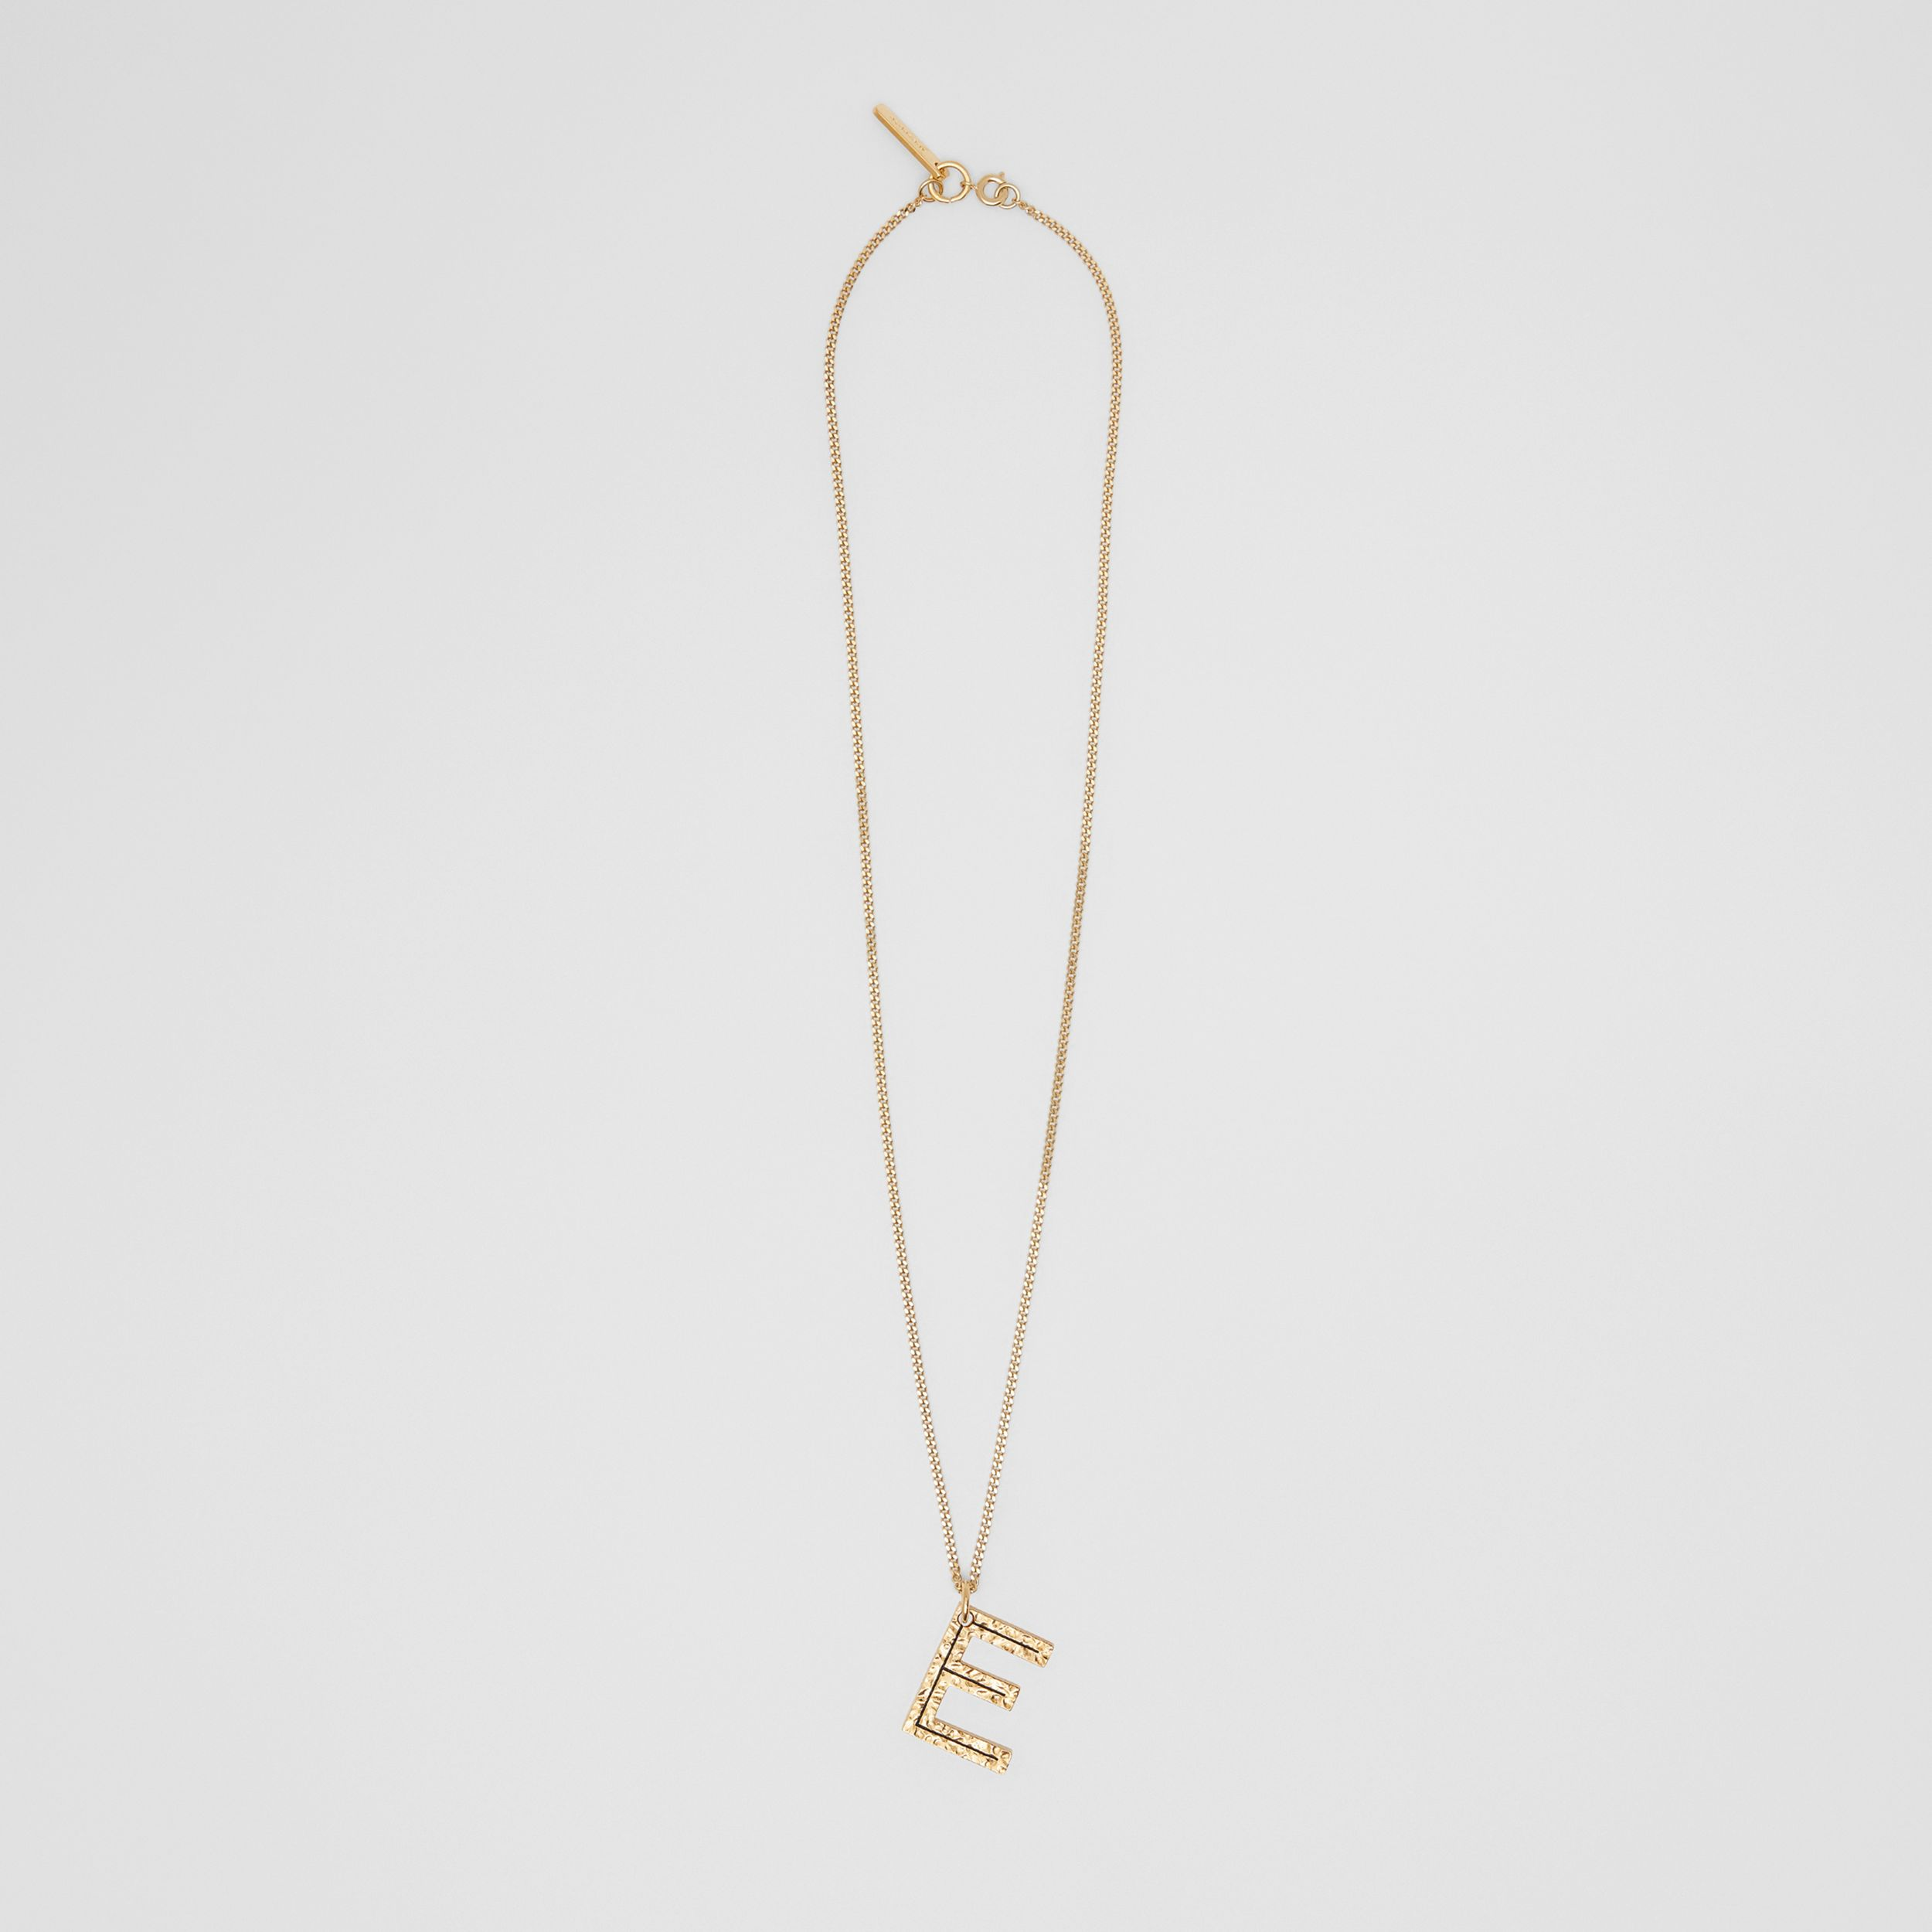 'E' Alphabet Charm Gold-plated Necklace in Light - Women | Burberry - 1